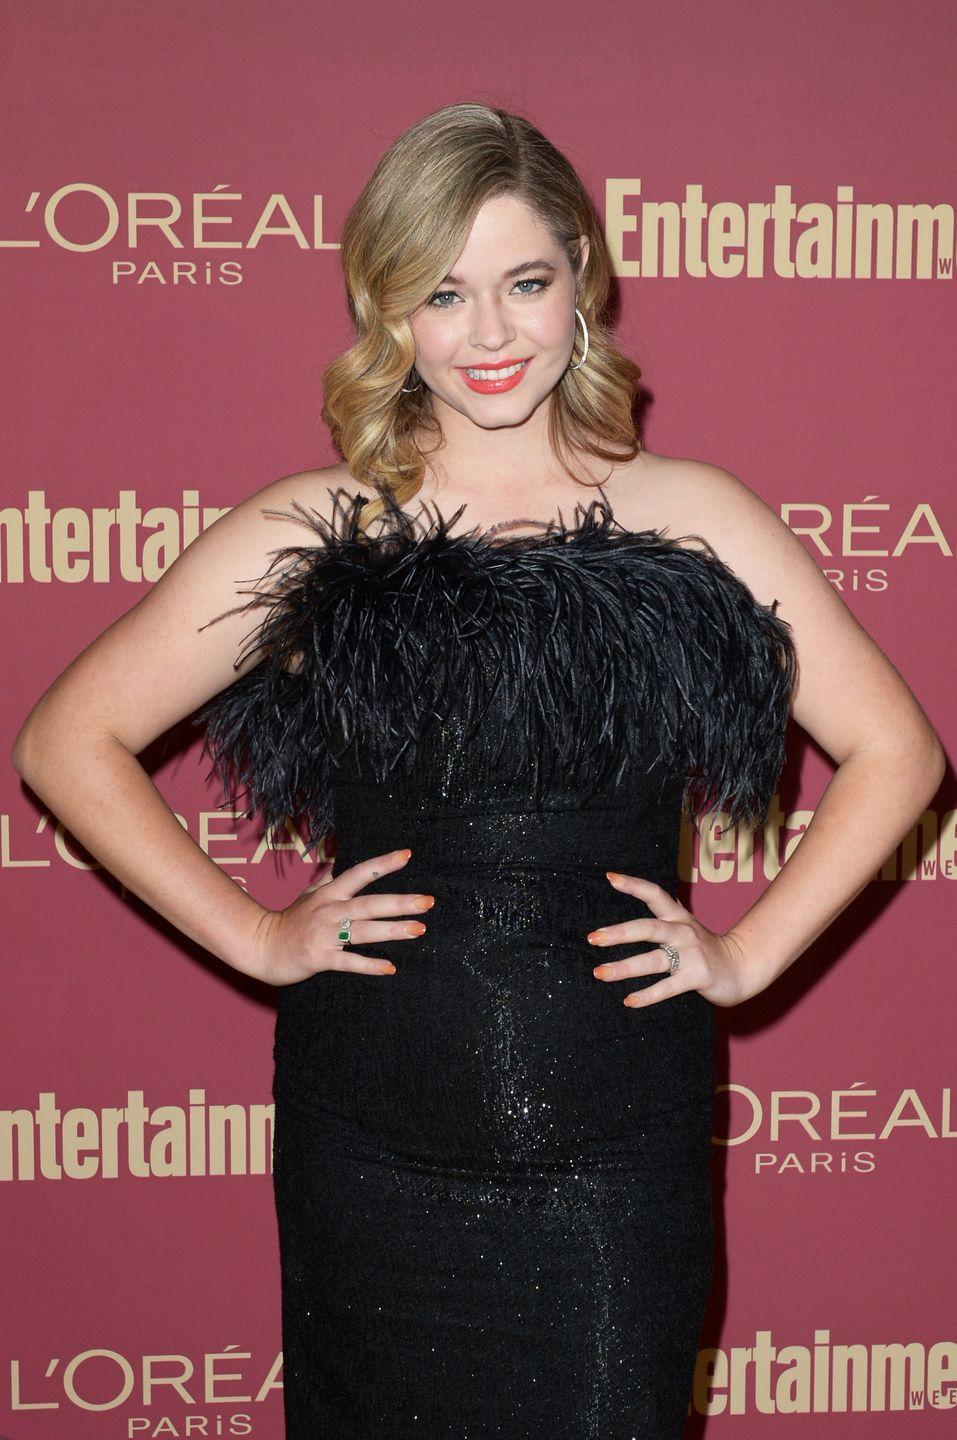 """<p><strong>The role:</strong> Hanna Marin in <em>Pretty Little Liars</em> (2010-present)</p><p><strong>Who *actually* played it:</strong> Ashley Benson </p><p><strong>The role they played instead:</strong> Alison DiLaurentis</p><p>""""I never really auditioned for Alison. It was just, 'We really like you for this instead.' I'm so happy I ended up being Alison,"""" Sasha said in <a href=""""http://www.m-magazine.com/posts/pretty-little-liars-actors-almost-recast-129004"""" rel=""""nofollow noopener"""" target=""""_blank"""" data-ylk=""""slk:an interview"""" class=""""link rapid-noclick-resp"""">an interview</a>.</p>"""